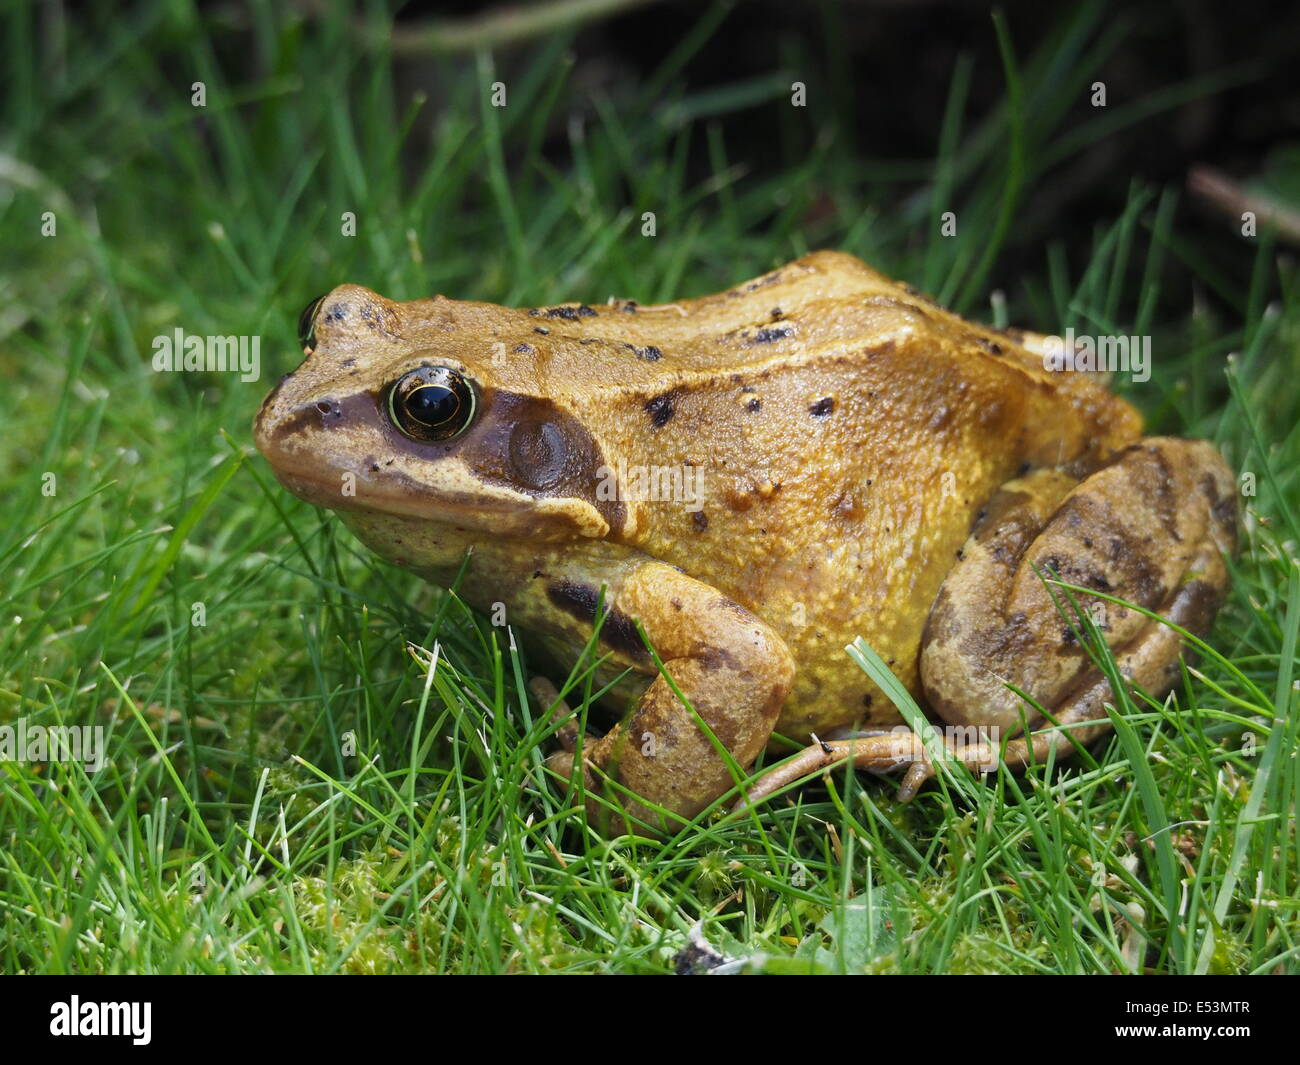 Mature European common frog (Rana temporaria) sitting in damp grass - Stock Image